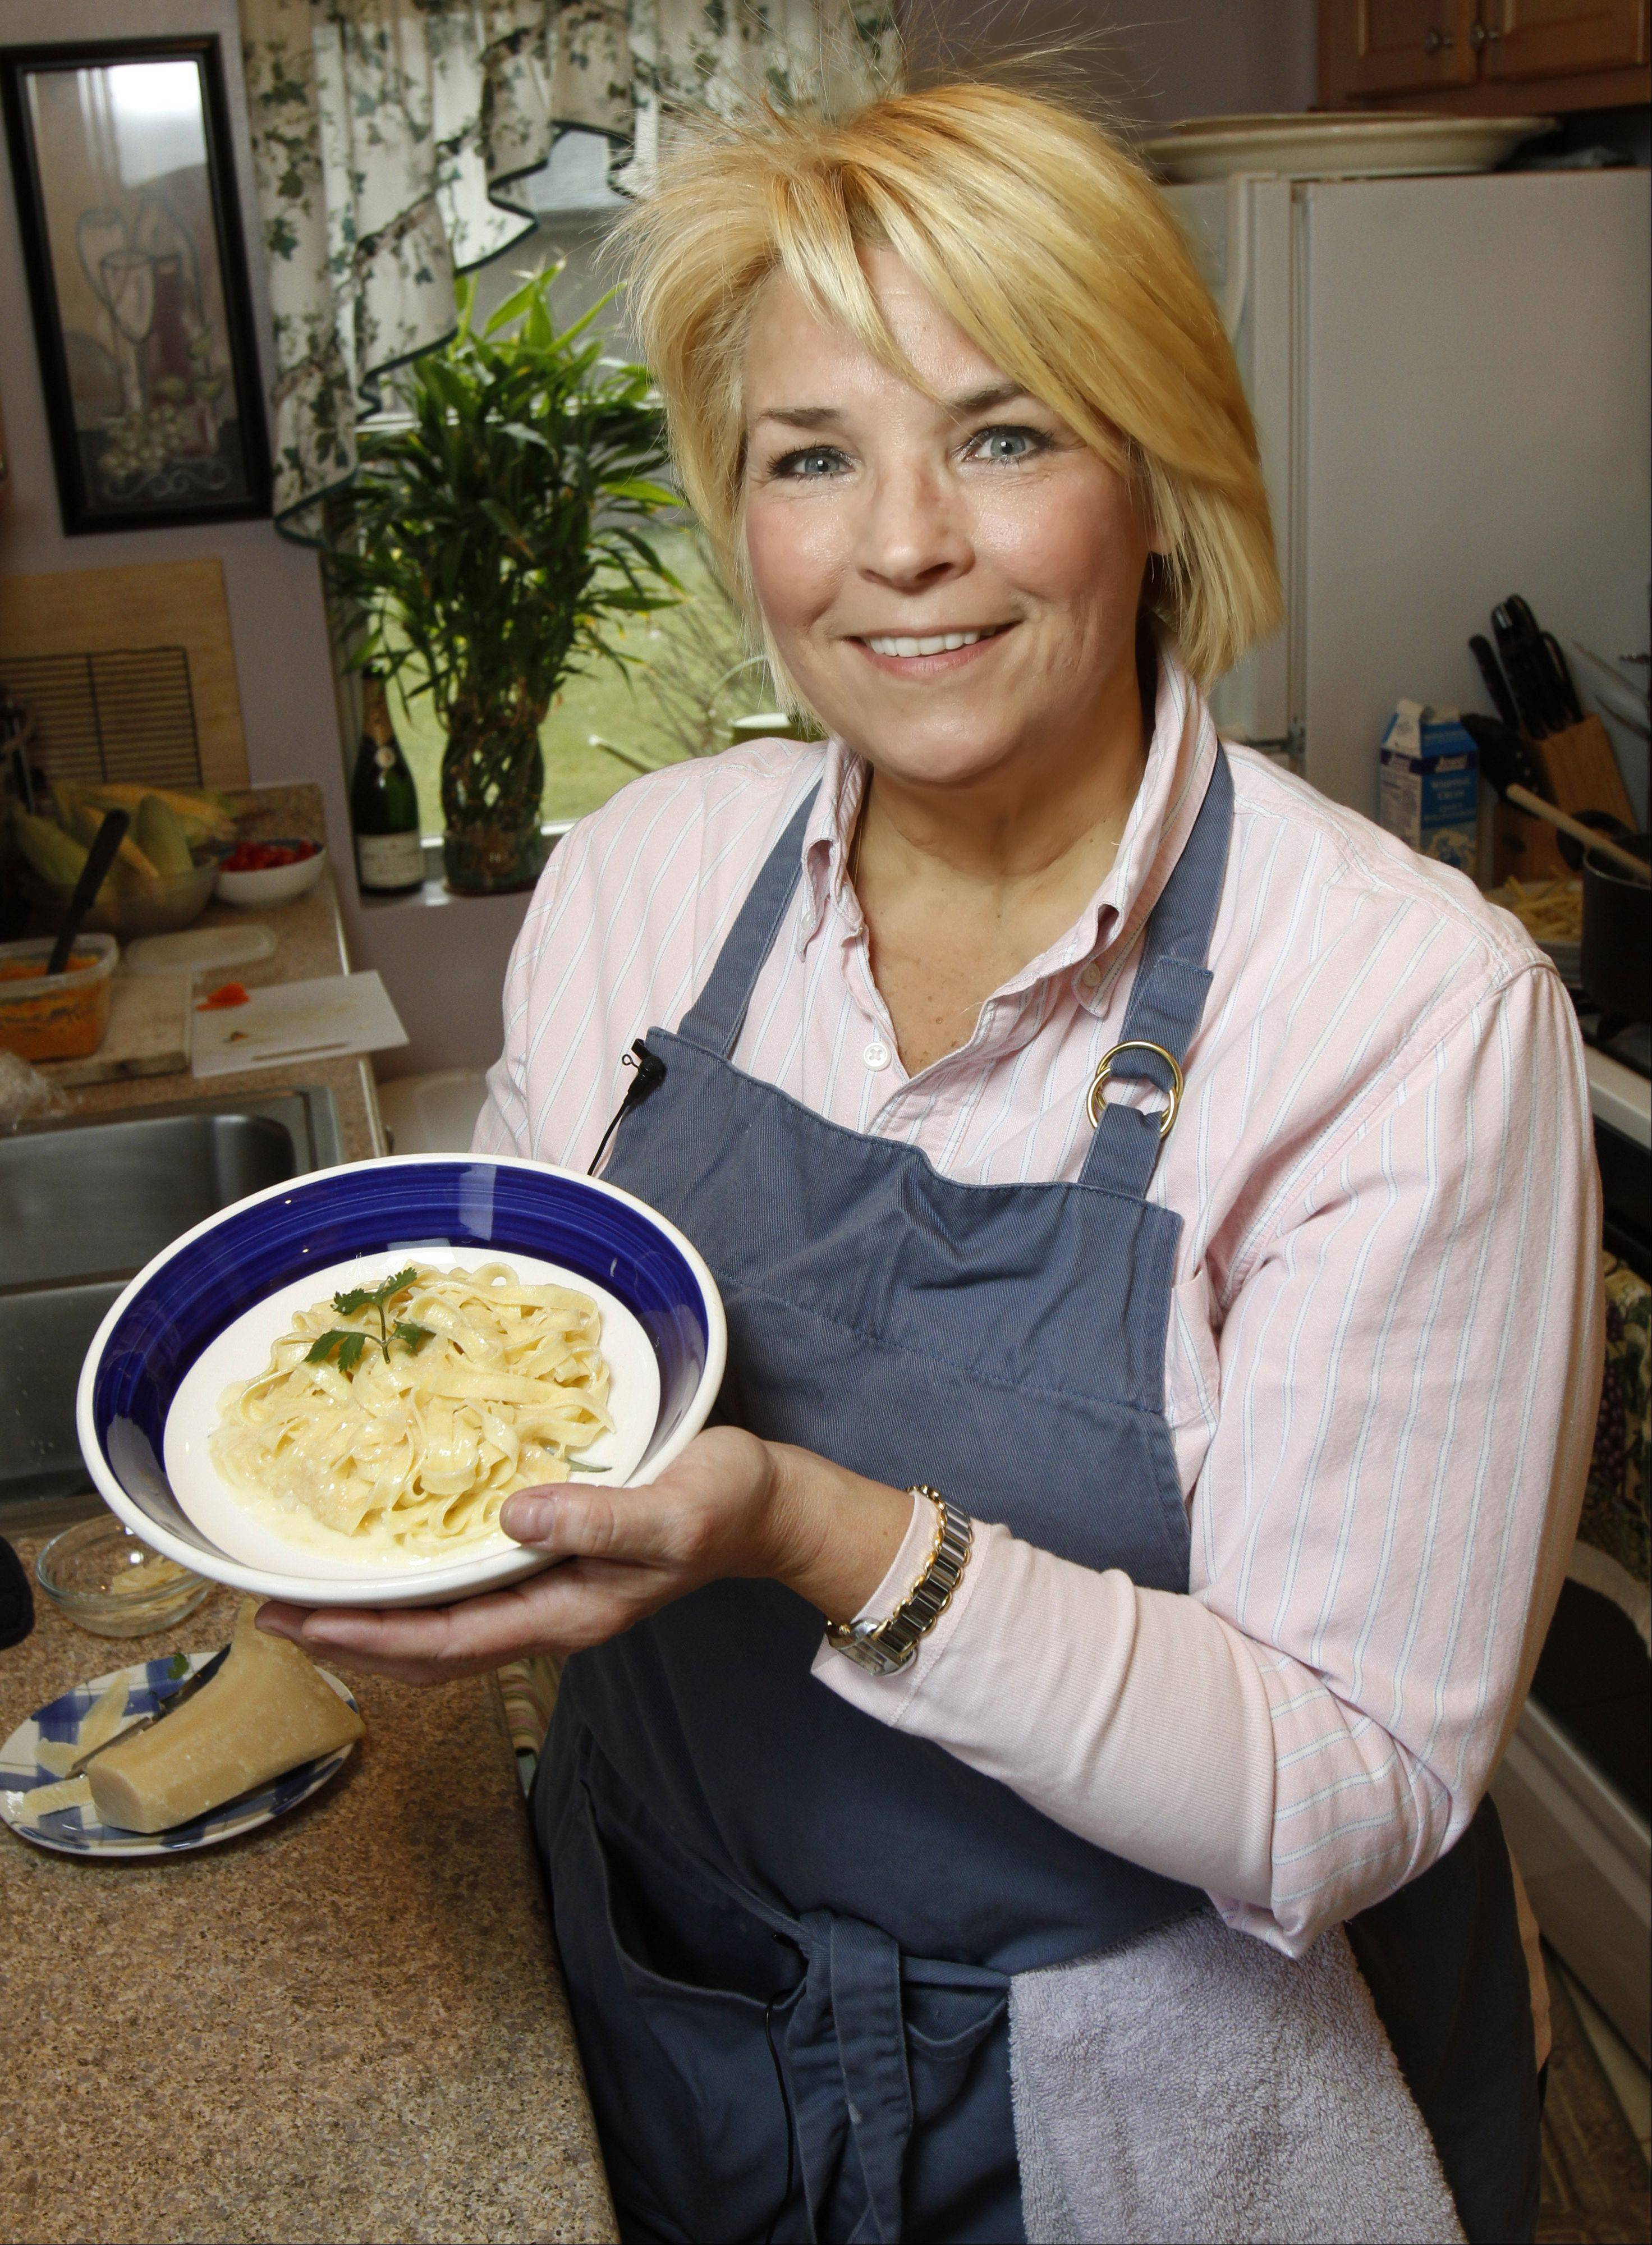 Competition fuels cook's creative recipes